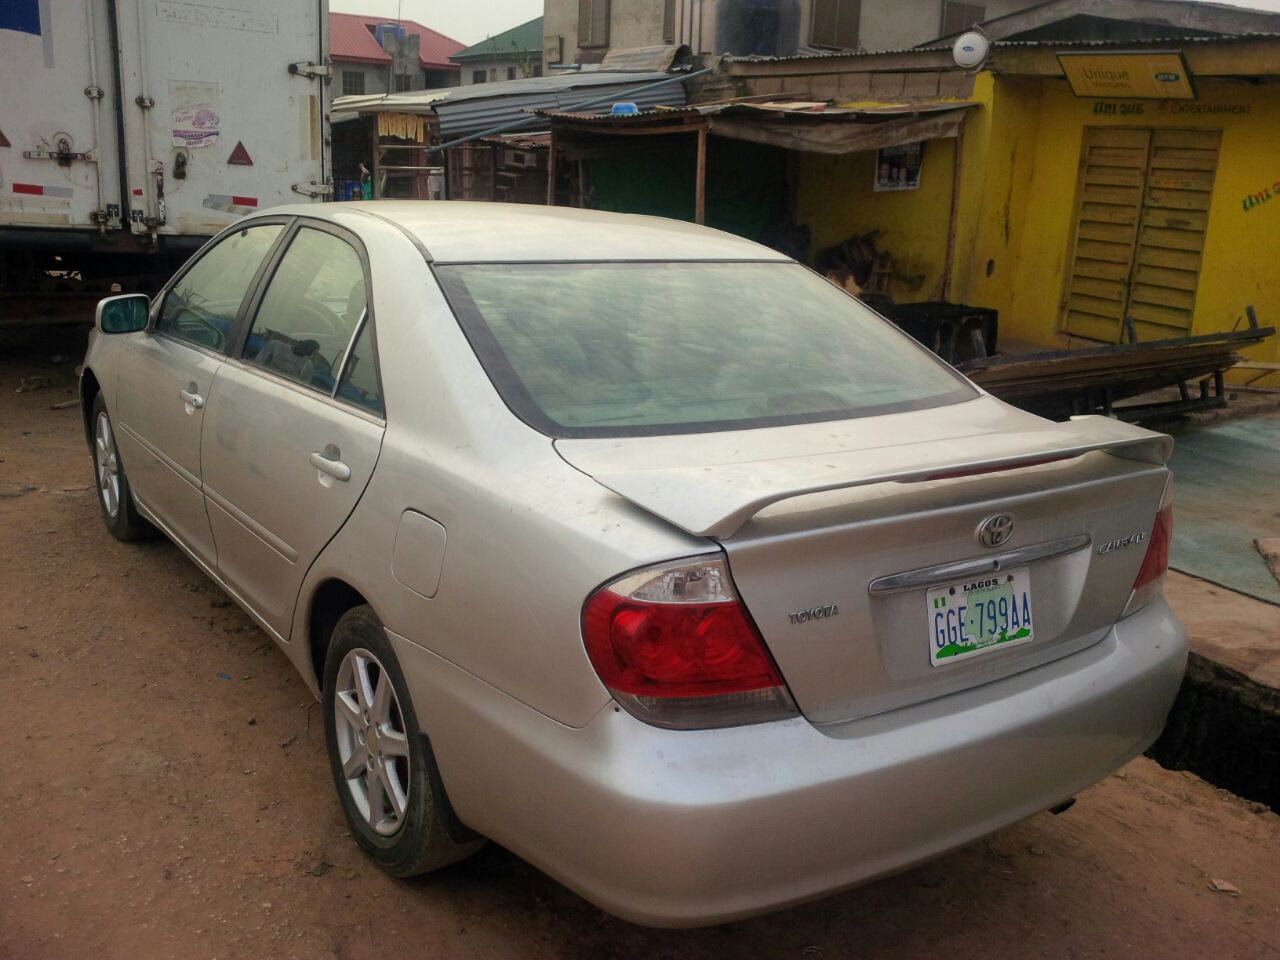 brand new toyota camry nigeria grand avanza g 1.5 used 03 for sale 900k autos